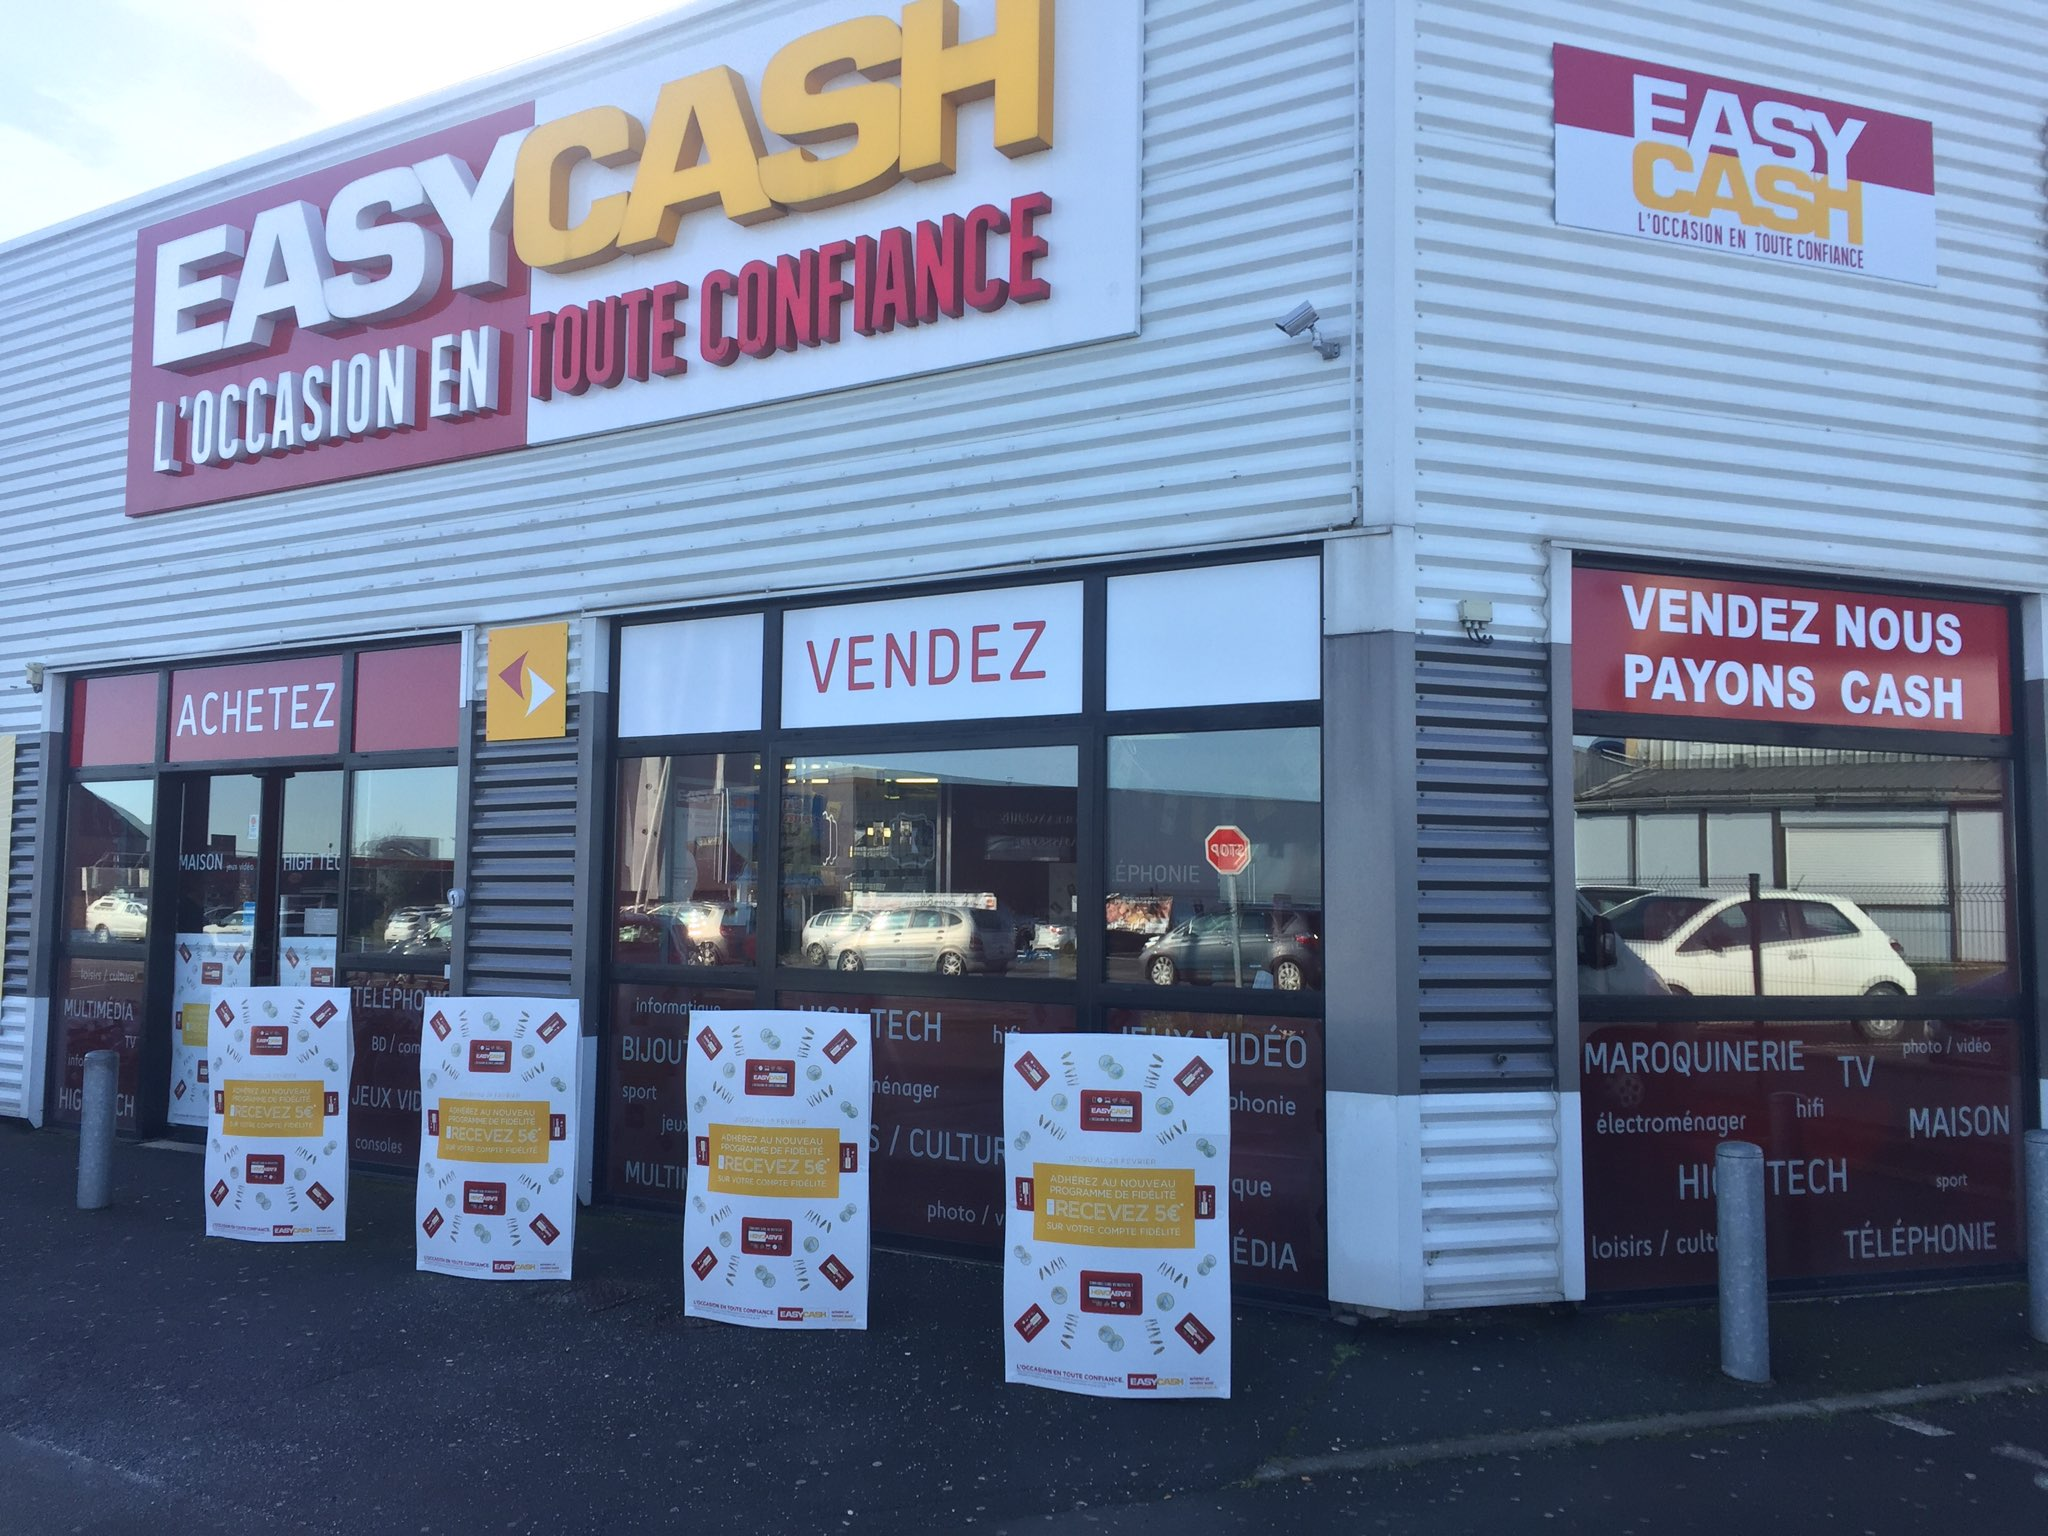 Destockage Caen Easy Cash Caen Les Occasions Easy Cash Bons Plans Pas Cher